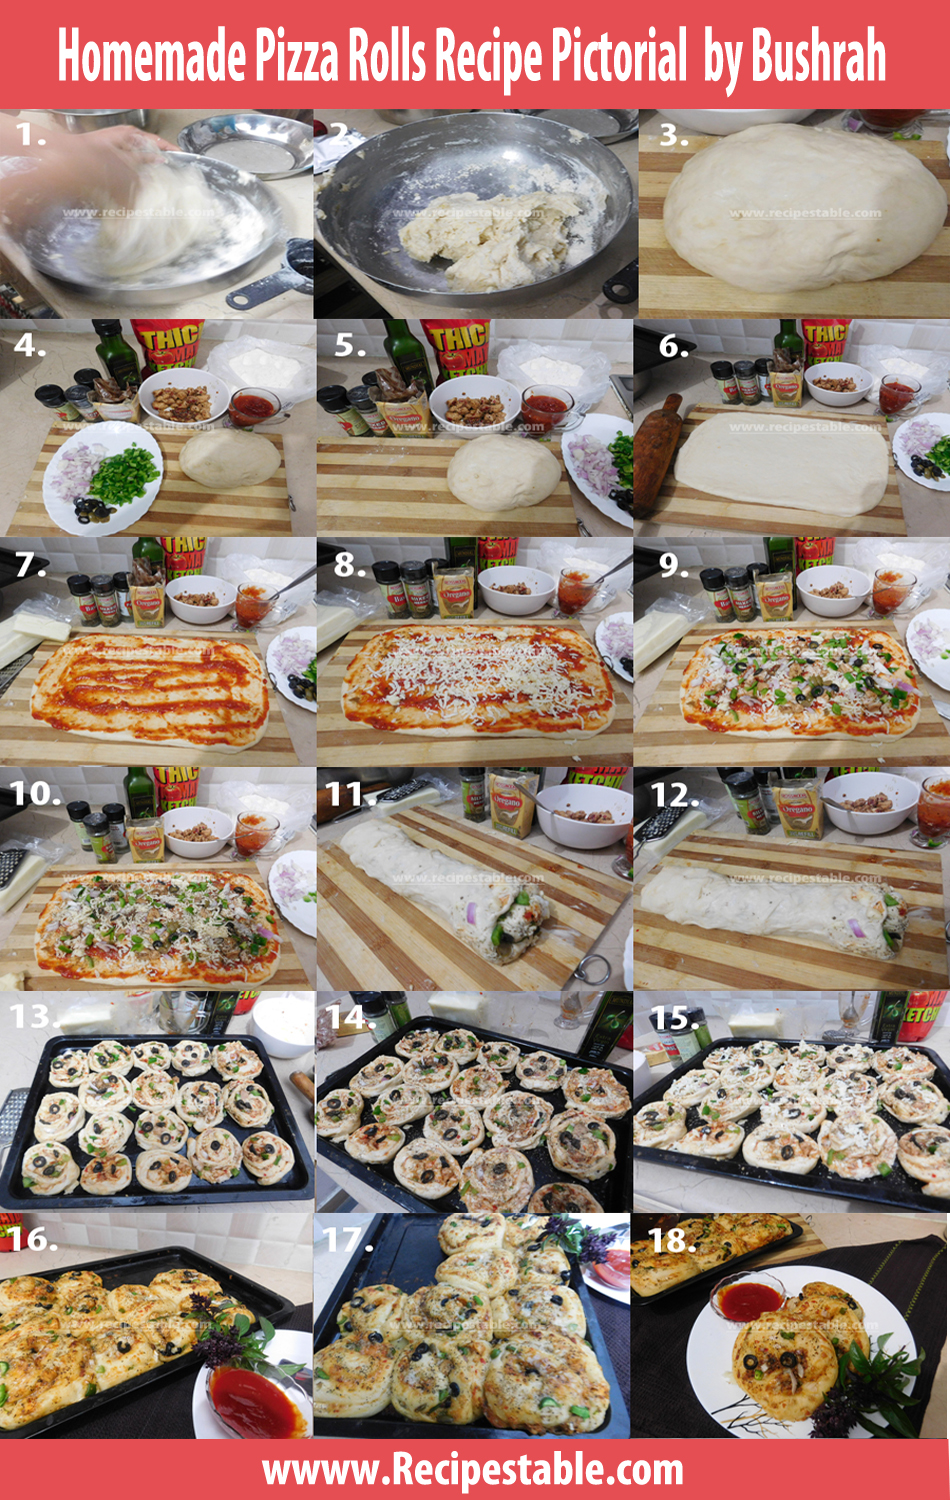 Homemade Pizza Rolls Recipe Pictorial